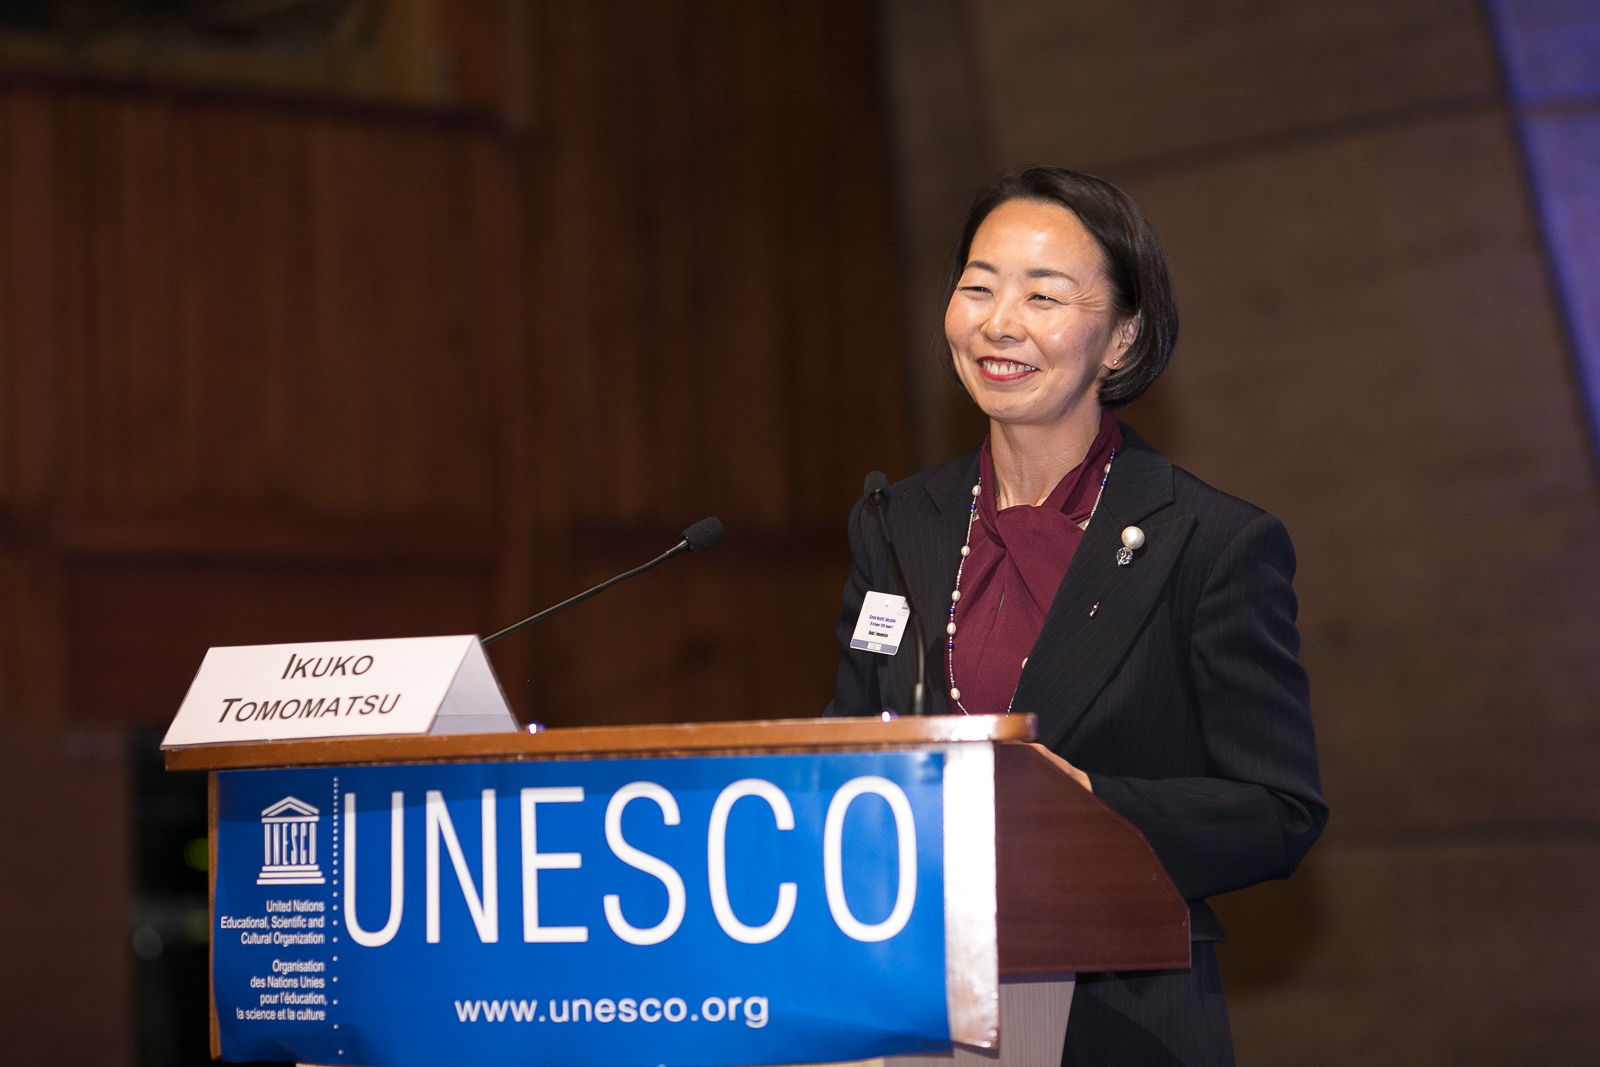 Ikuko Tomomatsu Speaking at UNESCO in Paris, October 2018